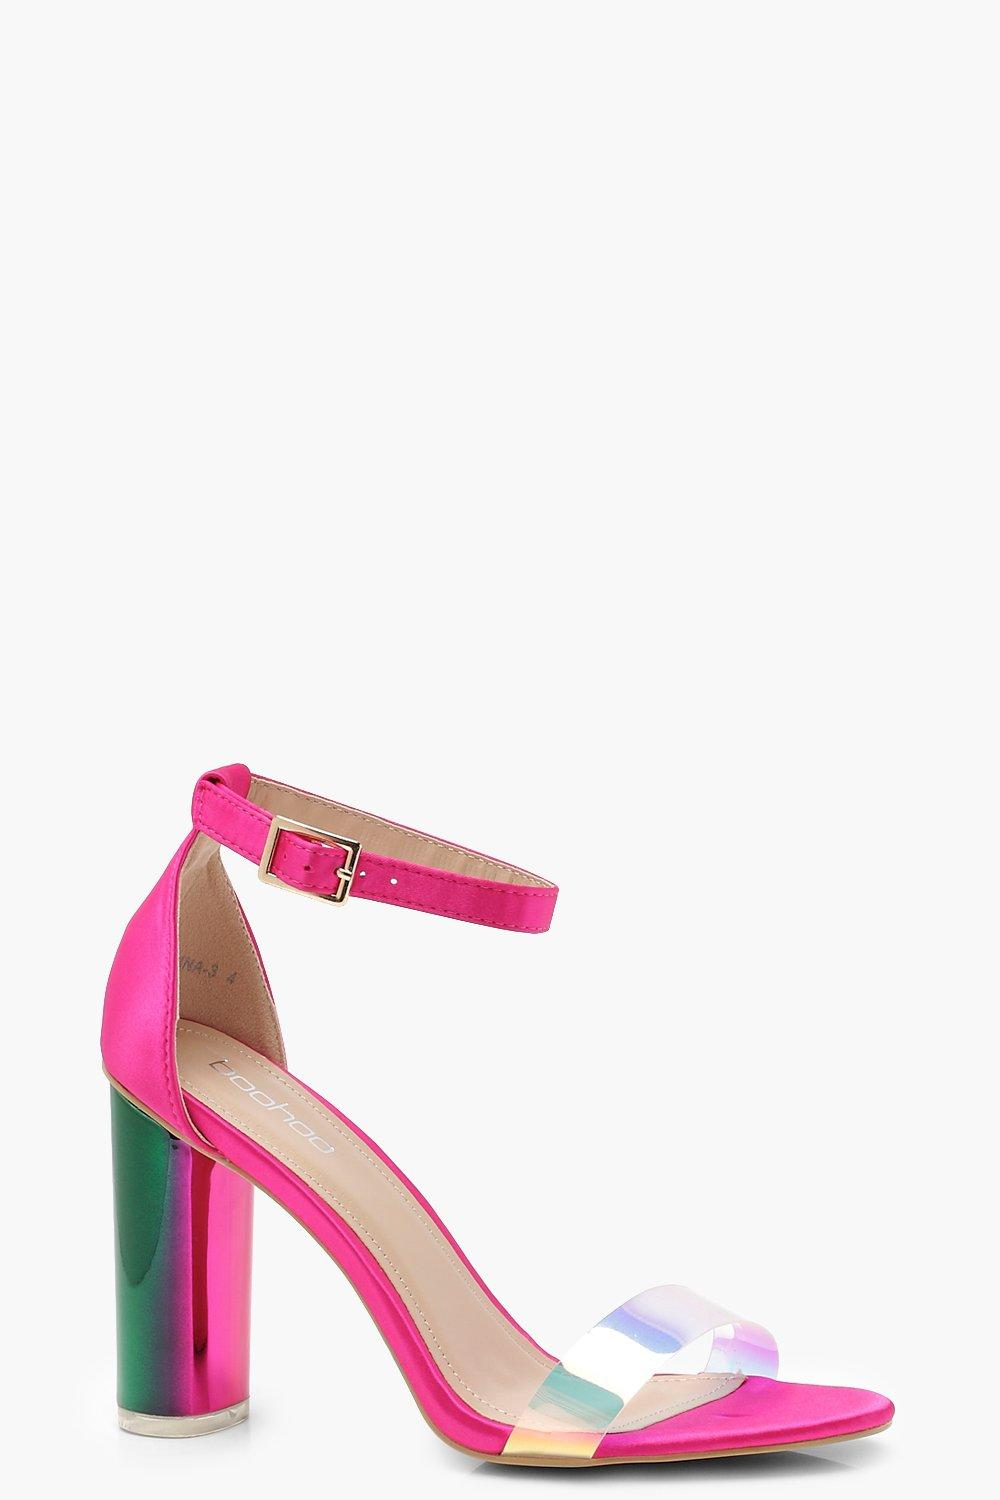 bc055799f864 Iridescent Strap Block Heels. Hover to zoom